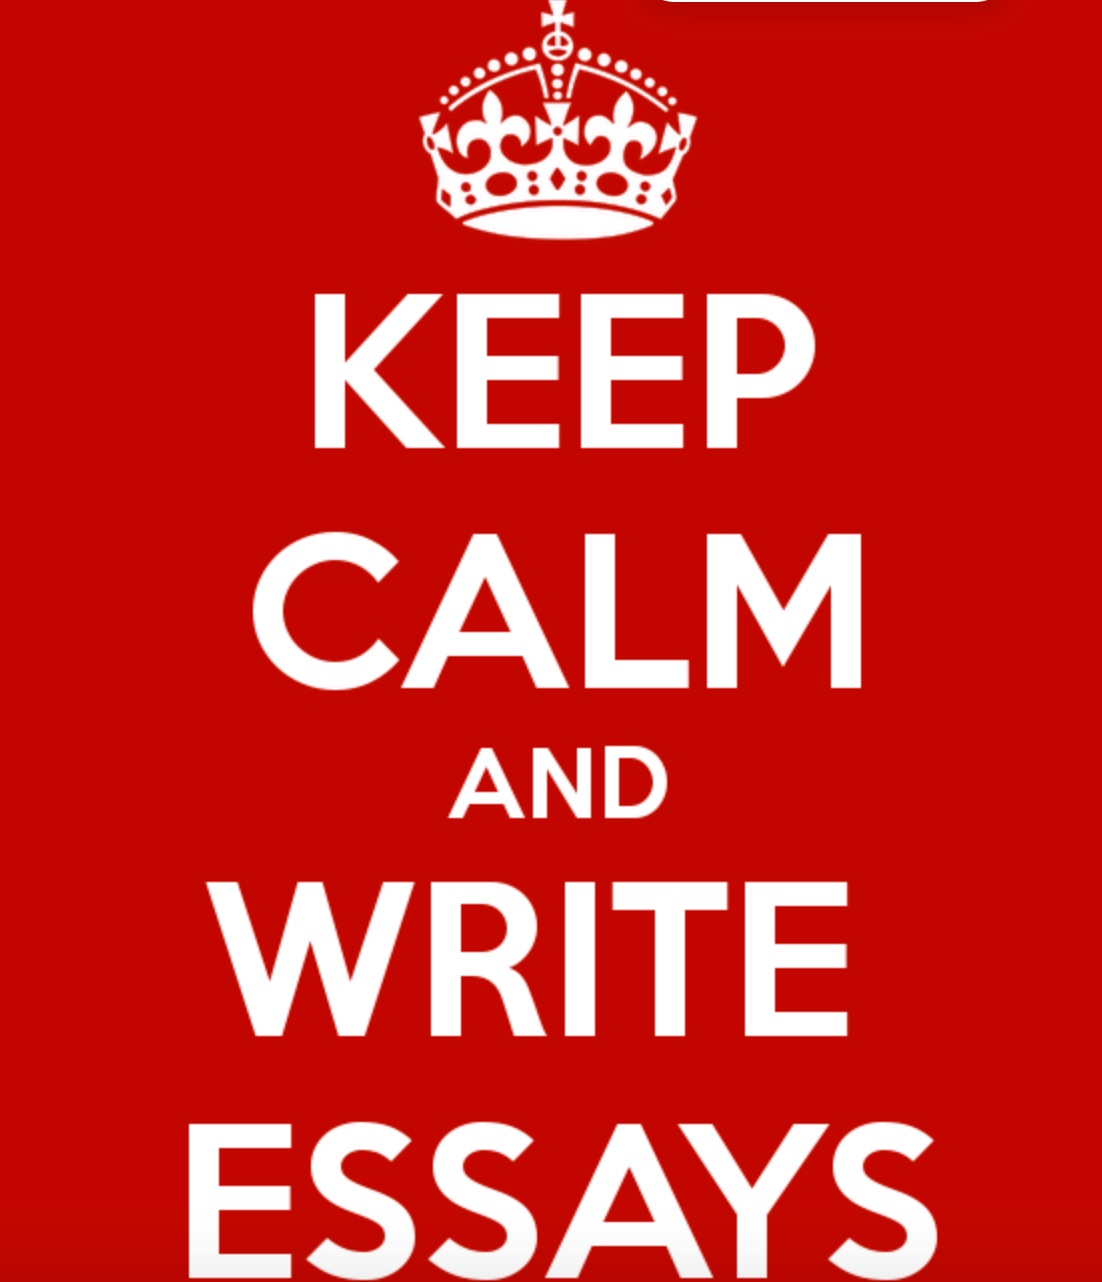 What I should read (american literature) to write a good essay?